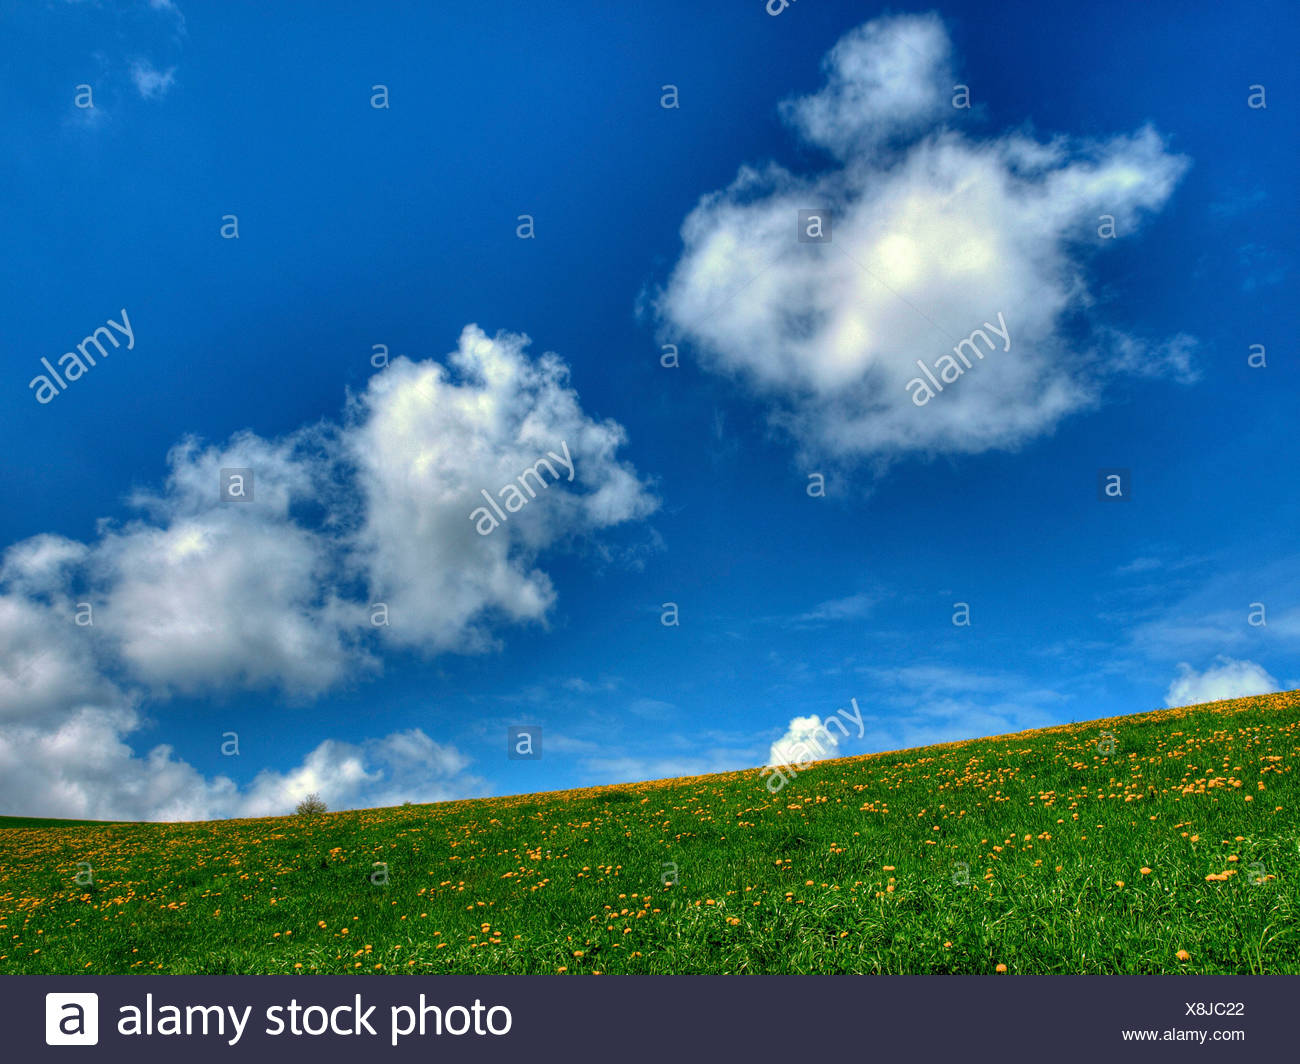 Scenery, dandelion, nature, horizontal format, day, meadow, clouds, cloister Gubel, Switzerland, canton Zug, spring, - Stock Image